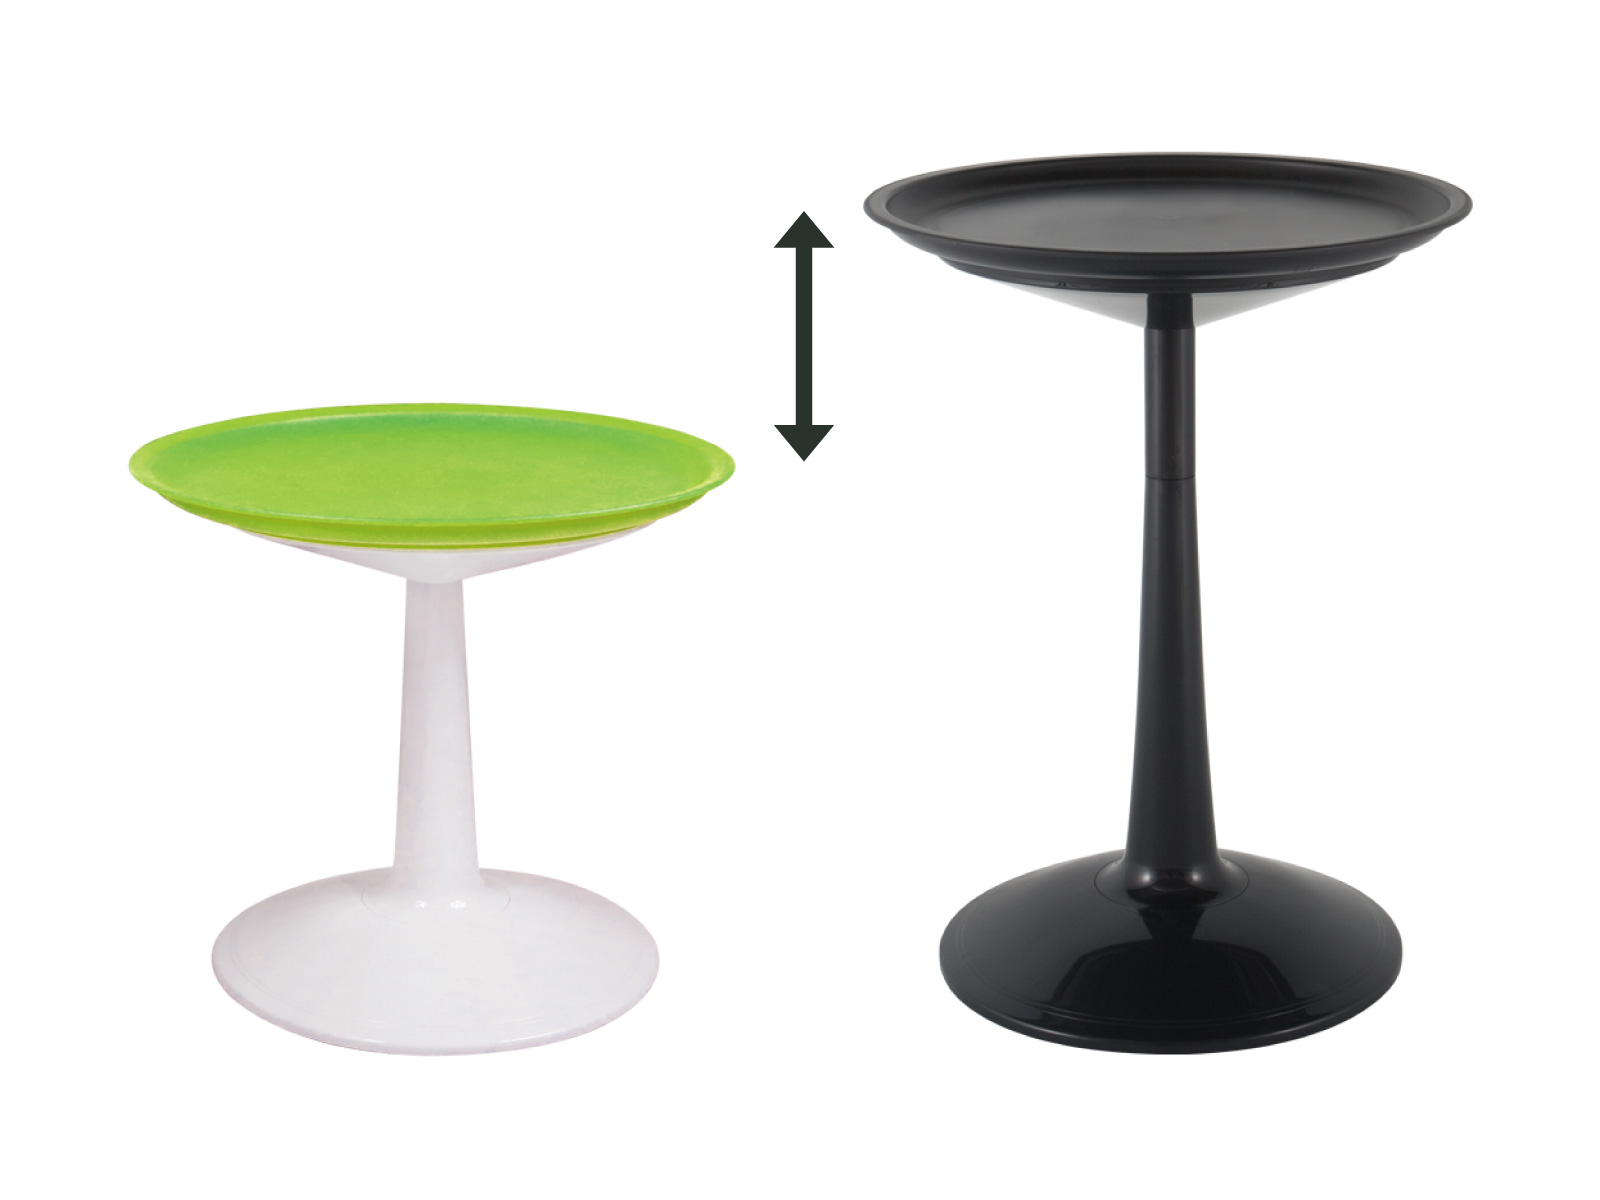 Sprout 2-in-1 Round Side Table detail